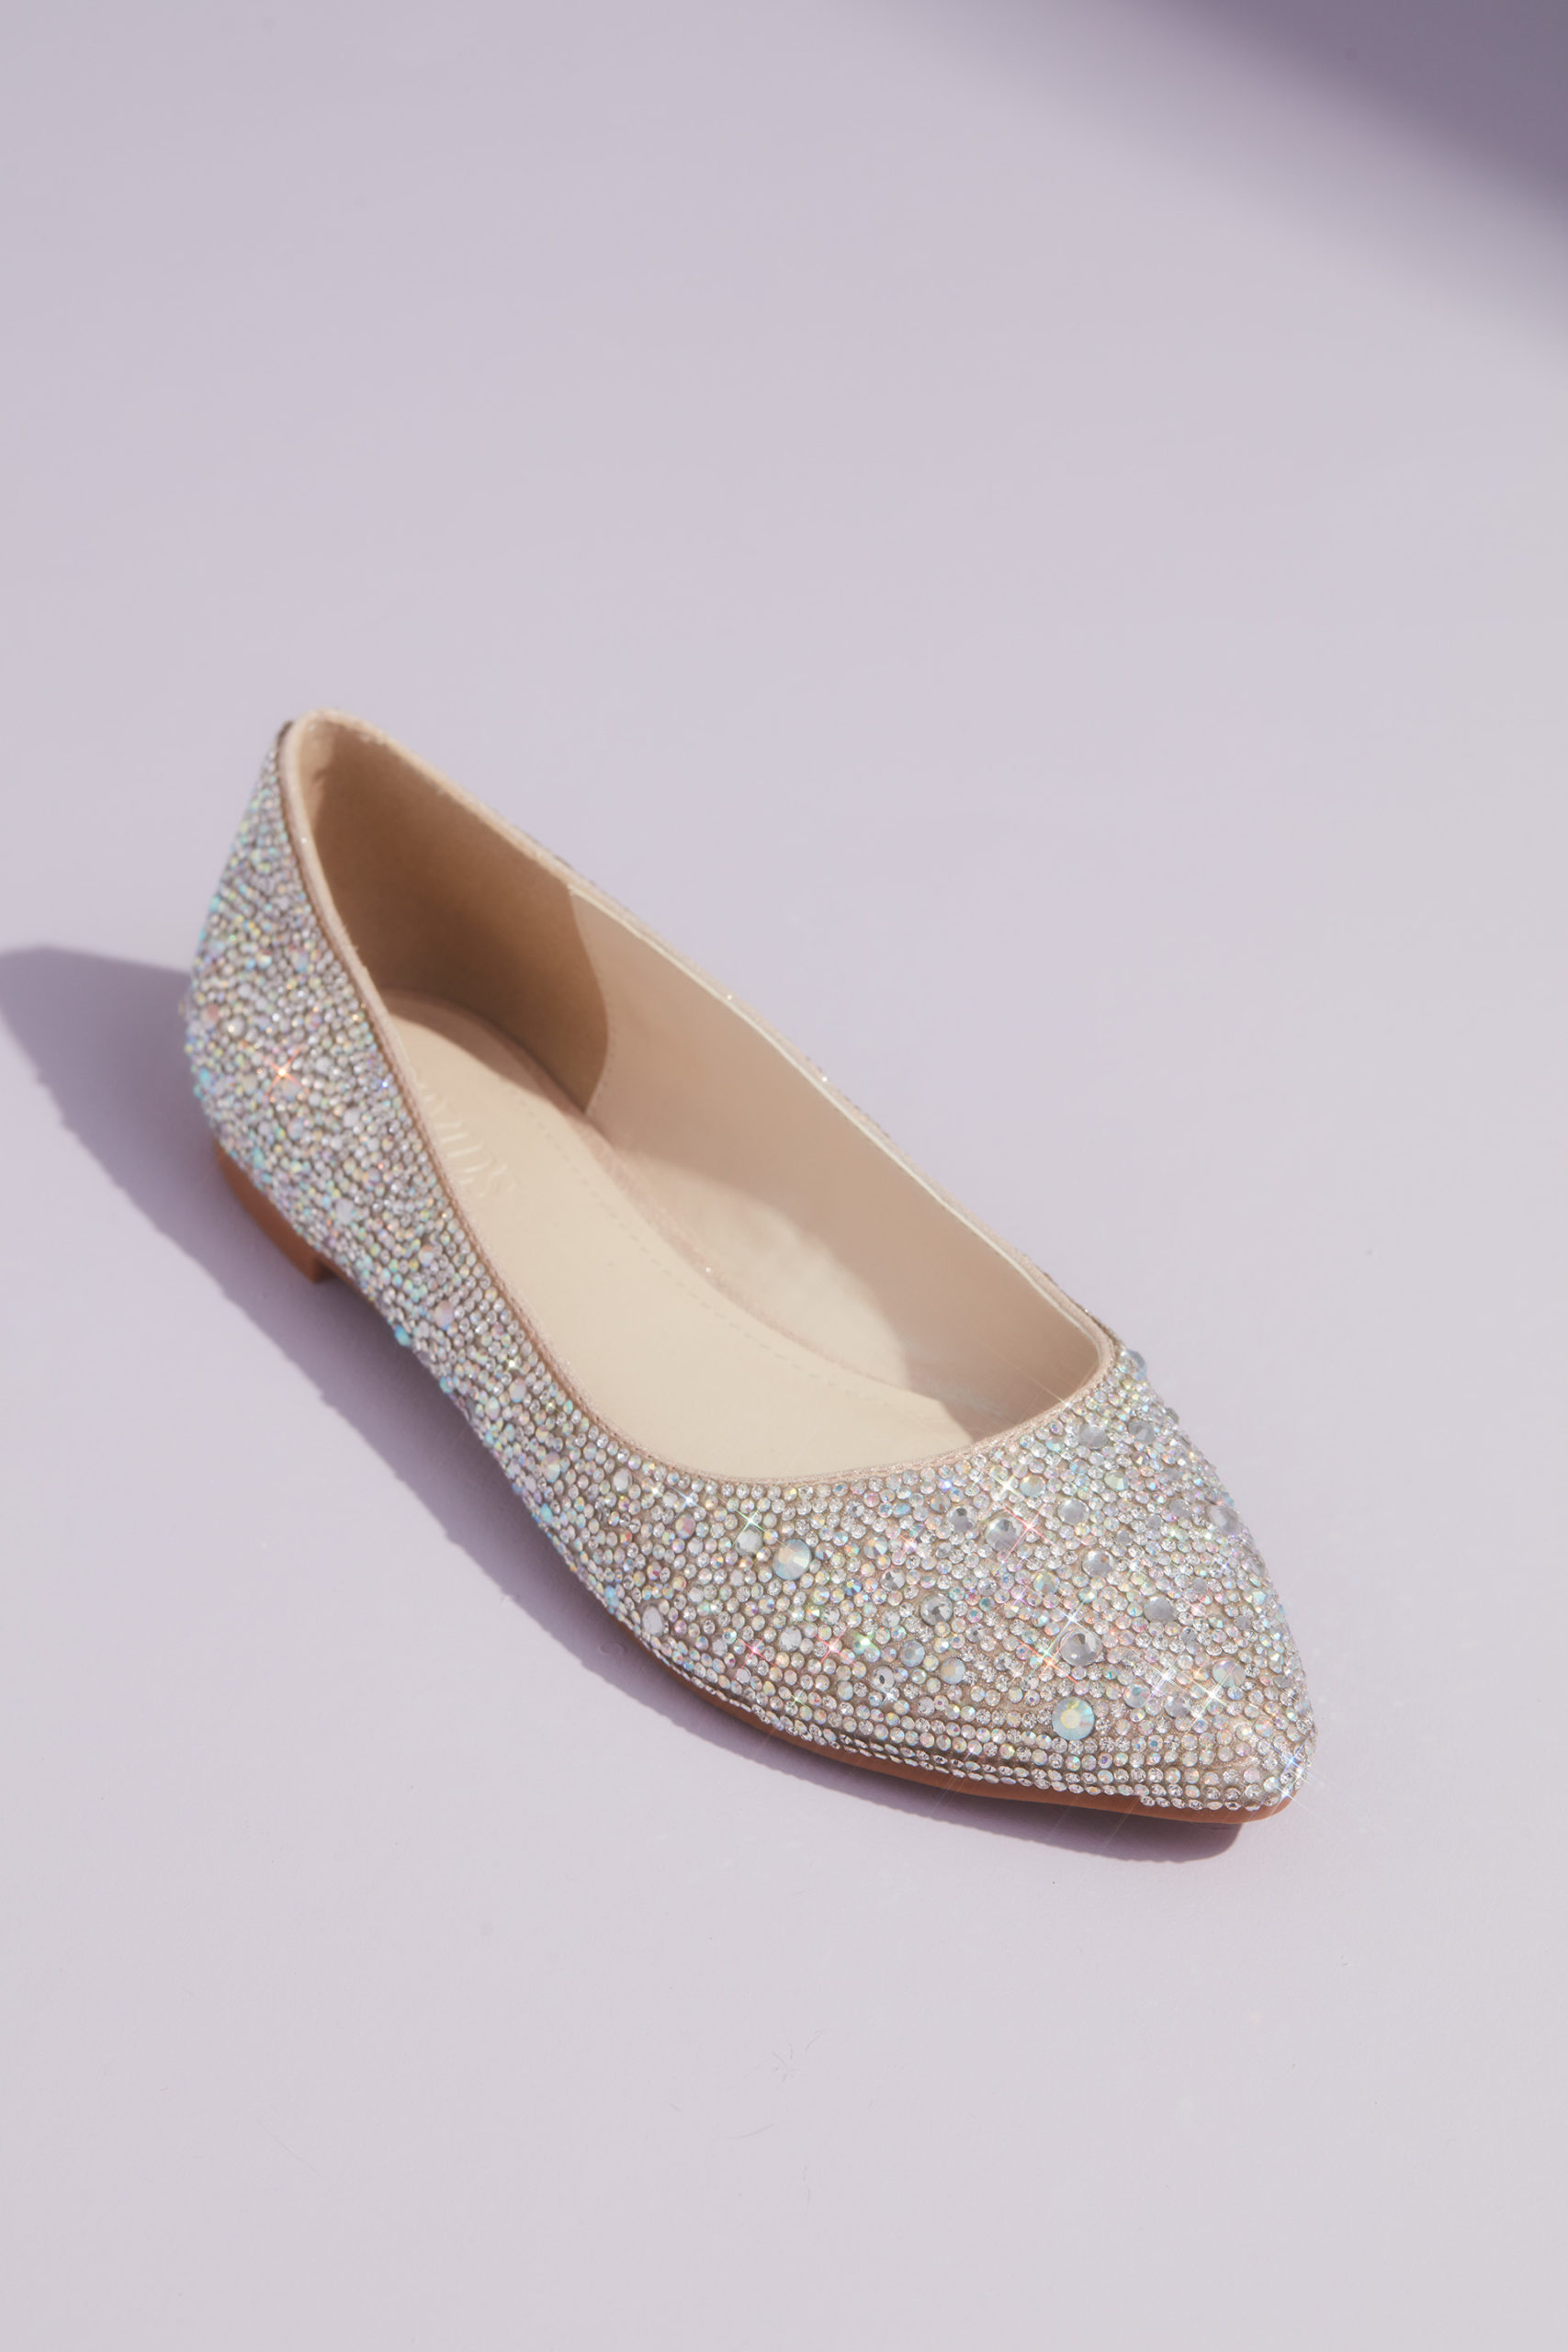 sparkly ballet flats for your quinceañera